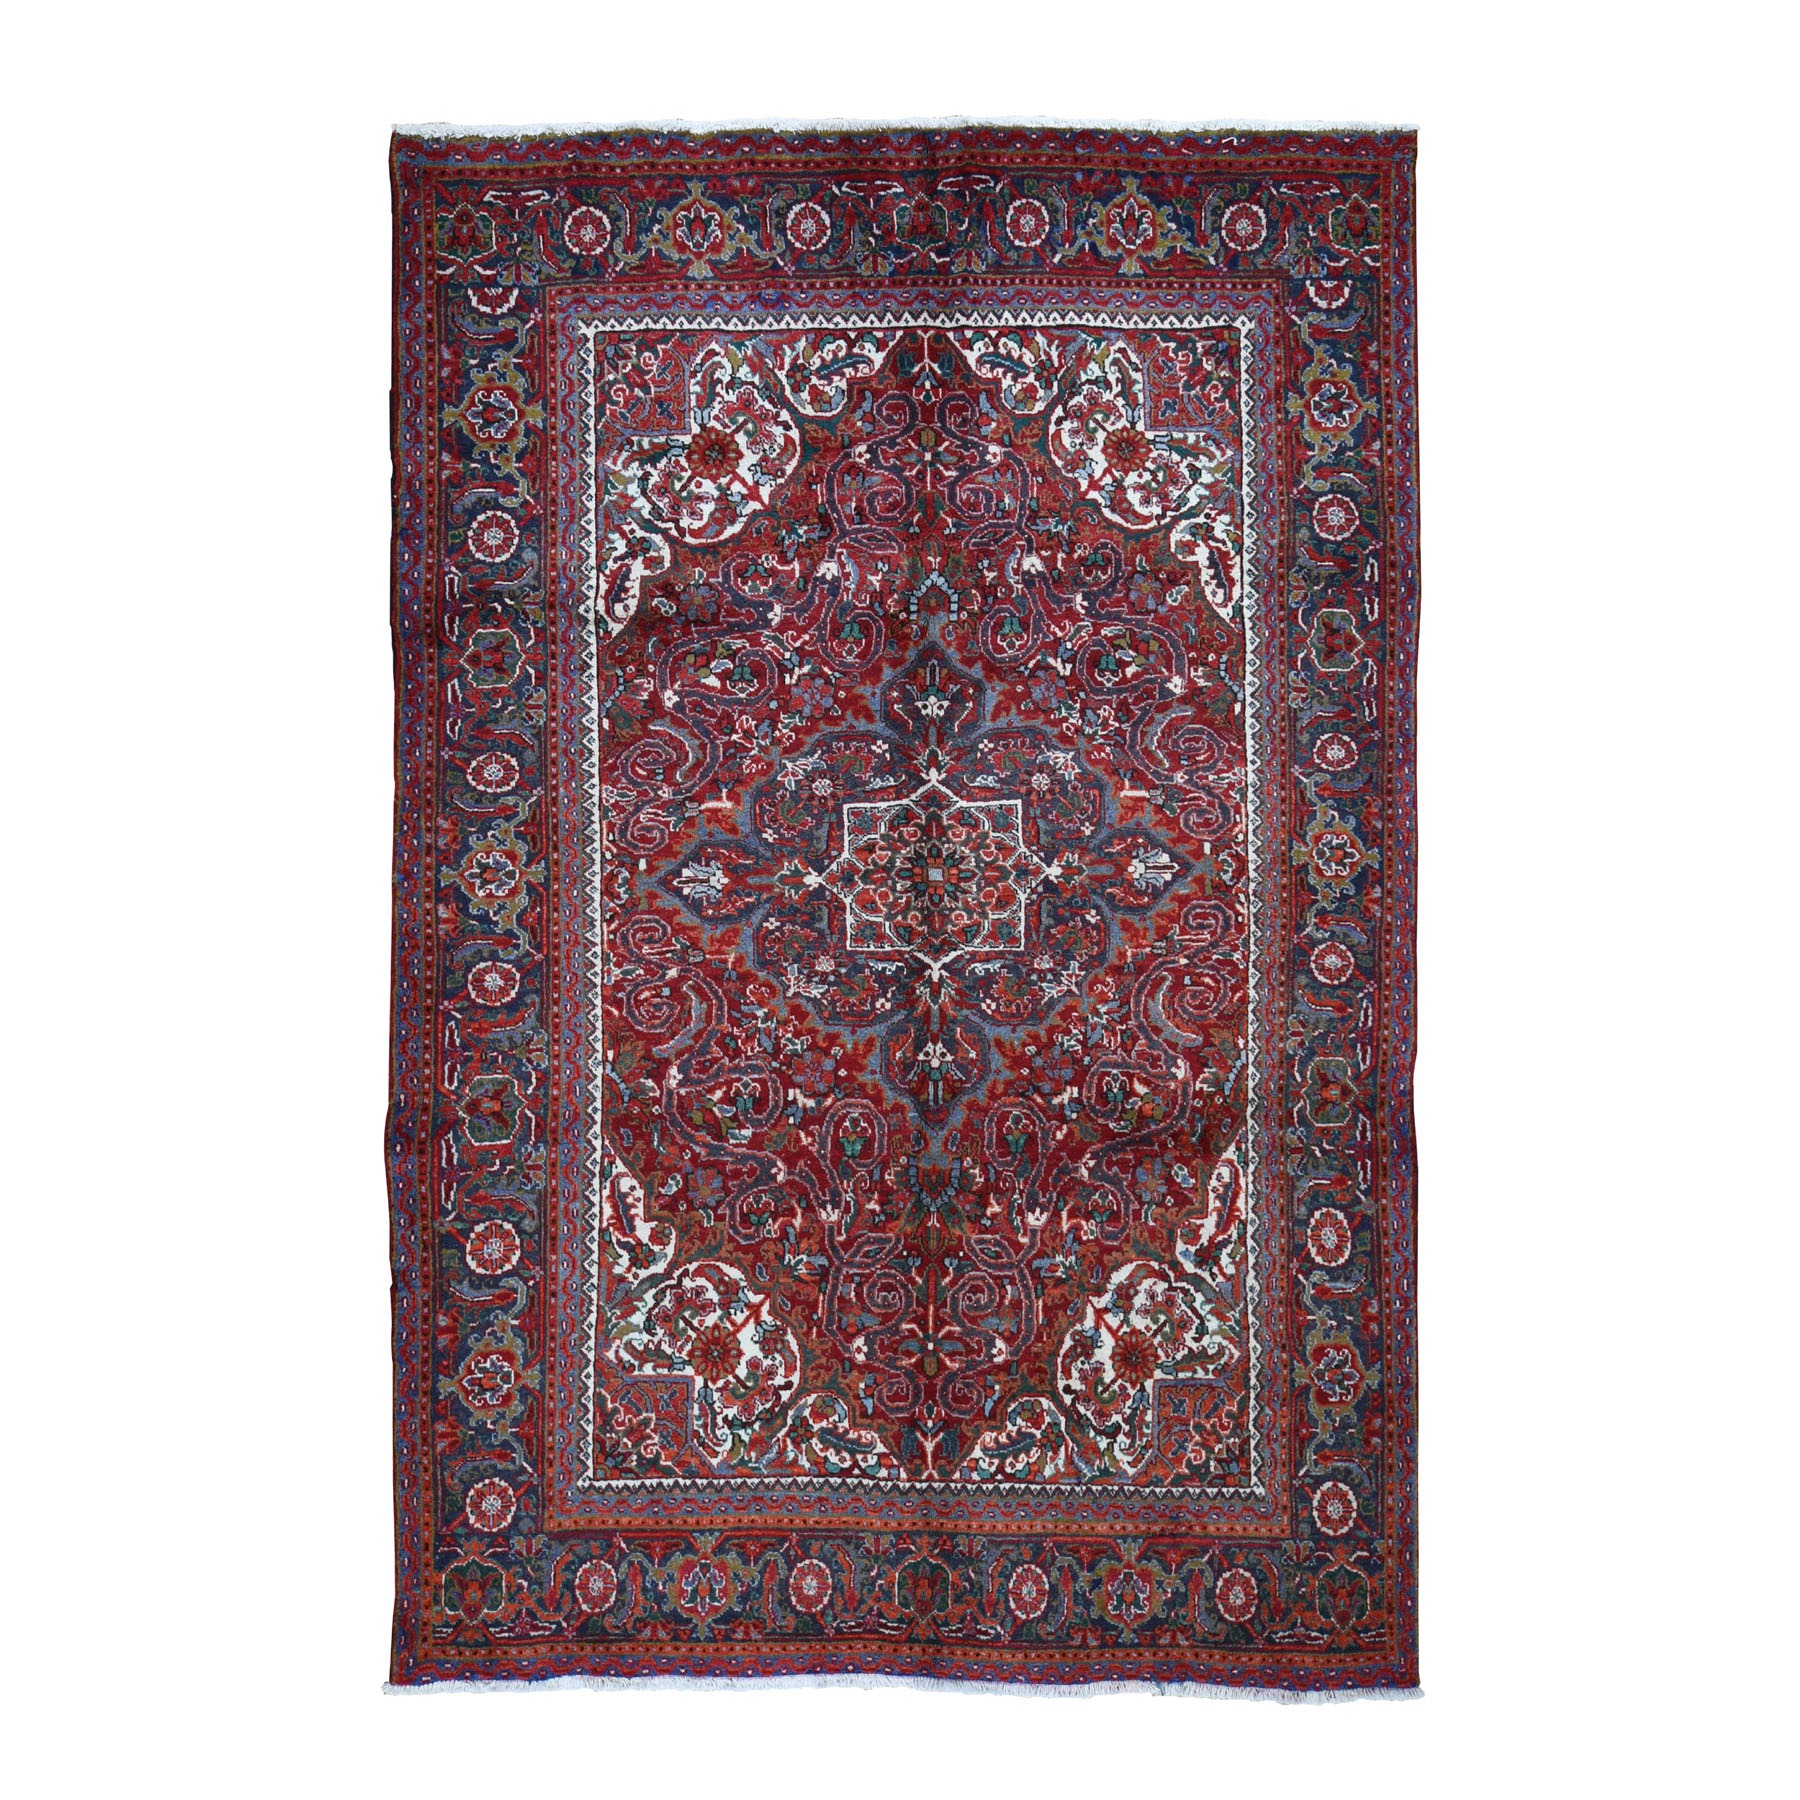 "6'10""X9'8"" Red Semi Antique Persian Heriz Flower Design Thick And Plush Hand Knotted Oriental Rug moad8cc8"